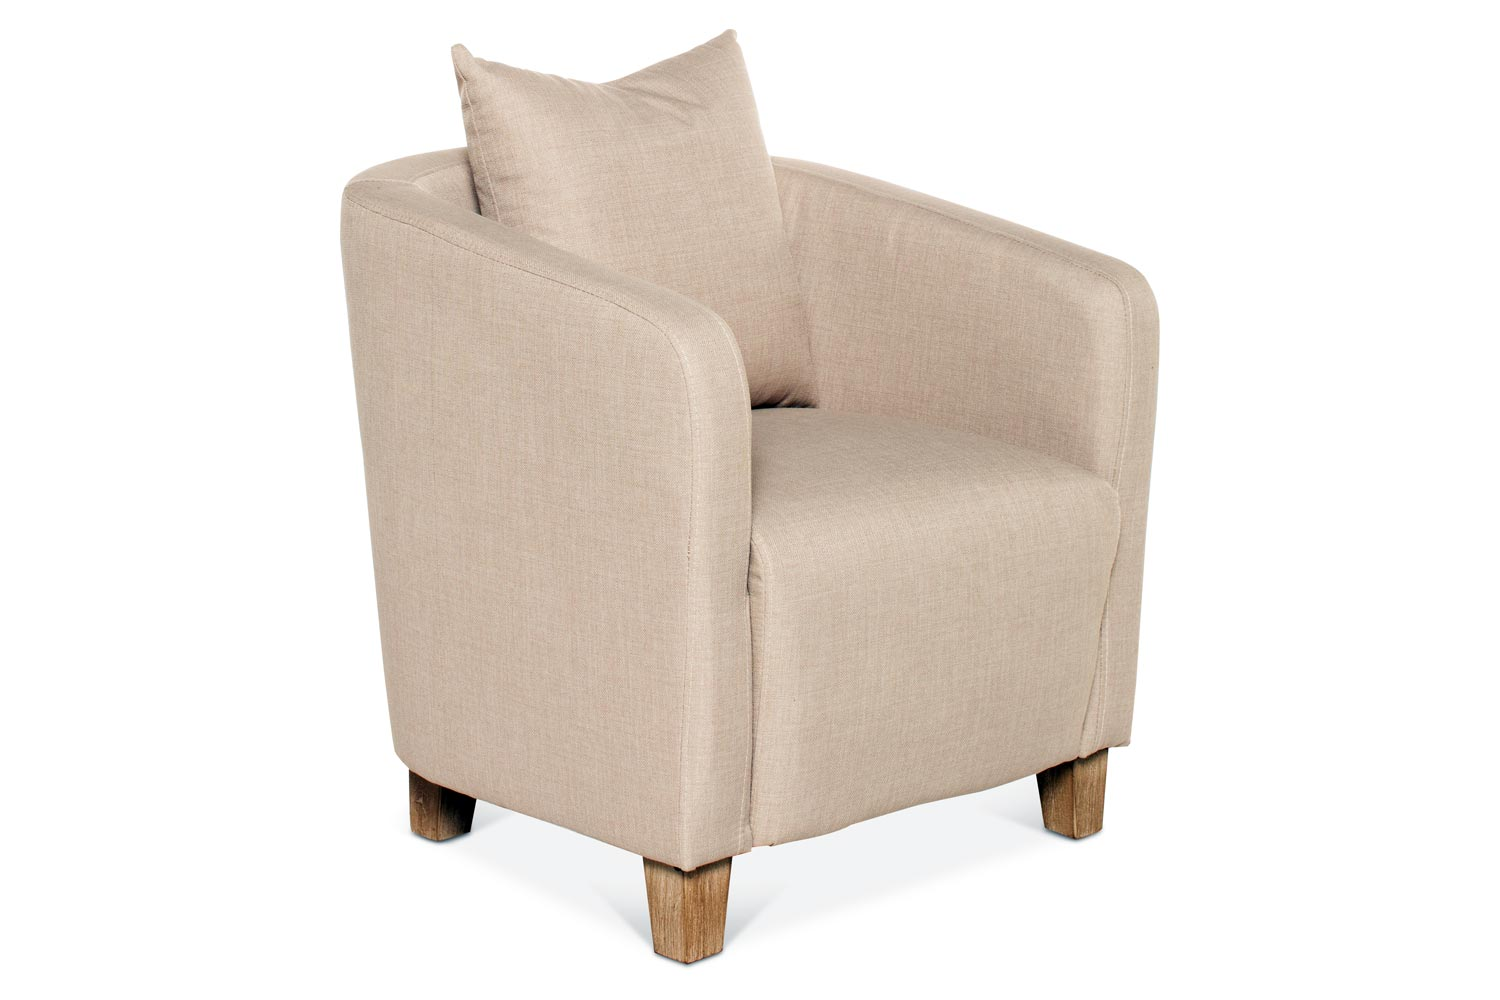 chair covers and more norfolk barrel slipcovers bedroom oatmeal fabric ireland